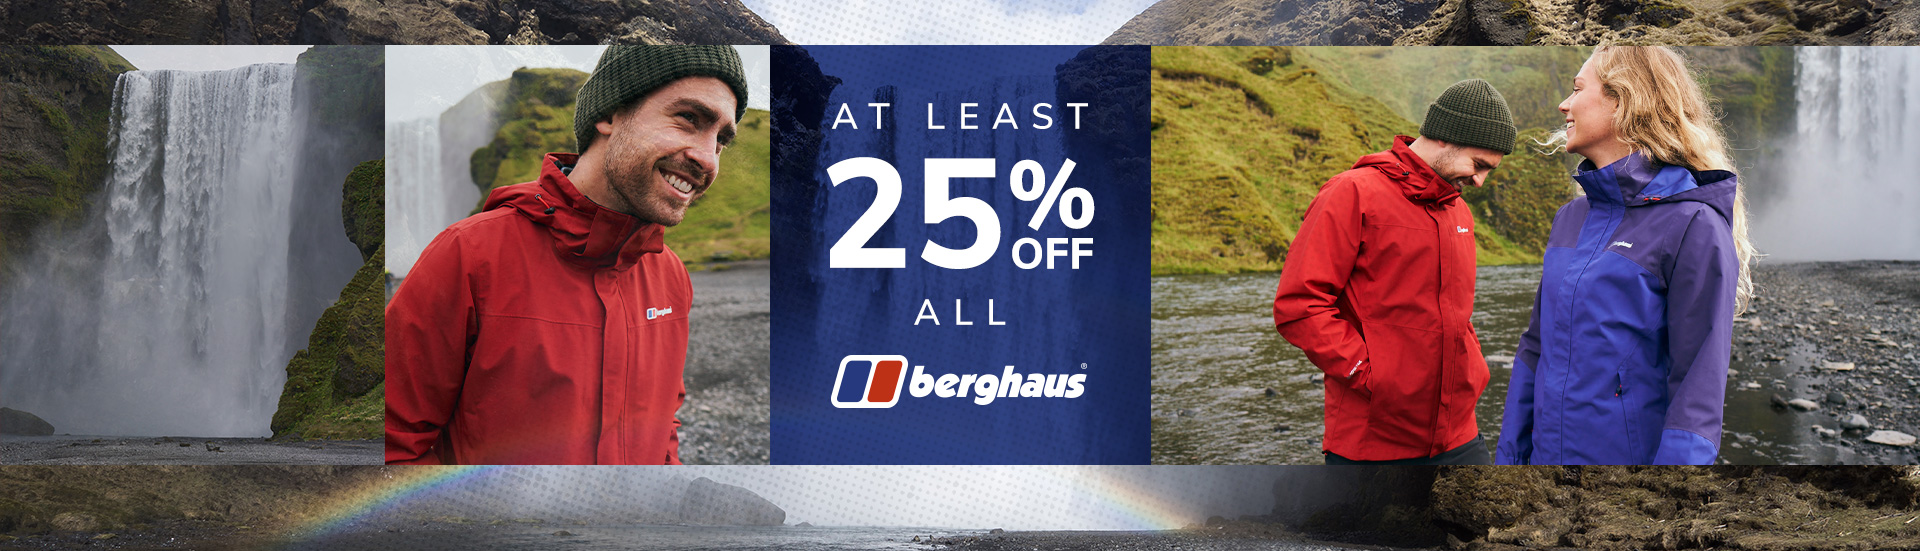 25% Off Berghaus